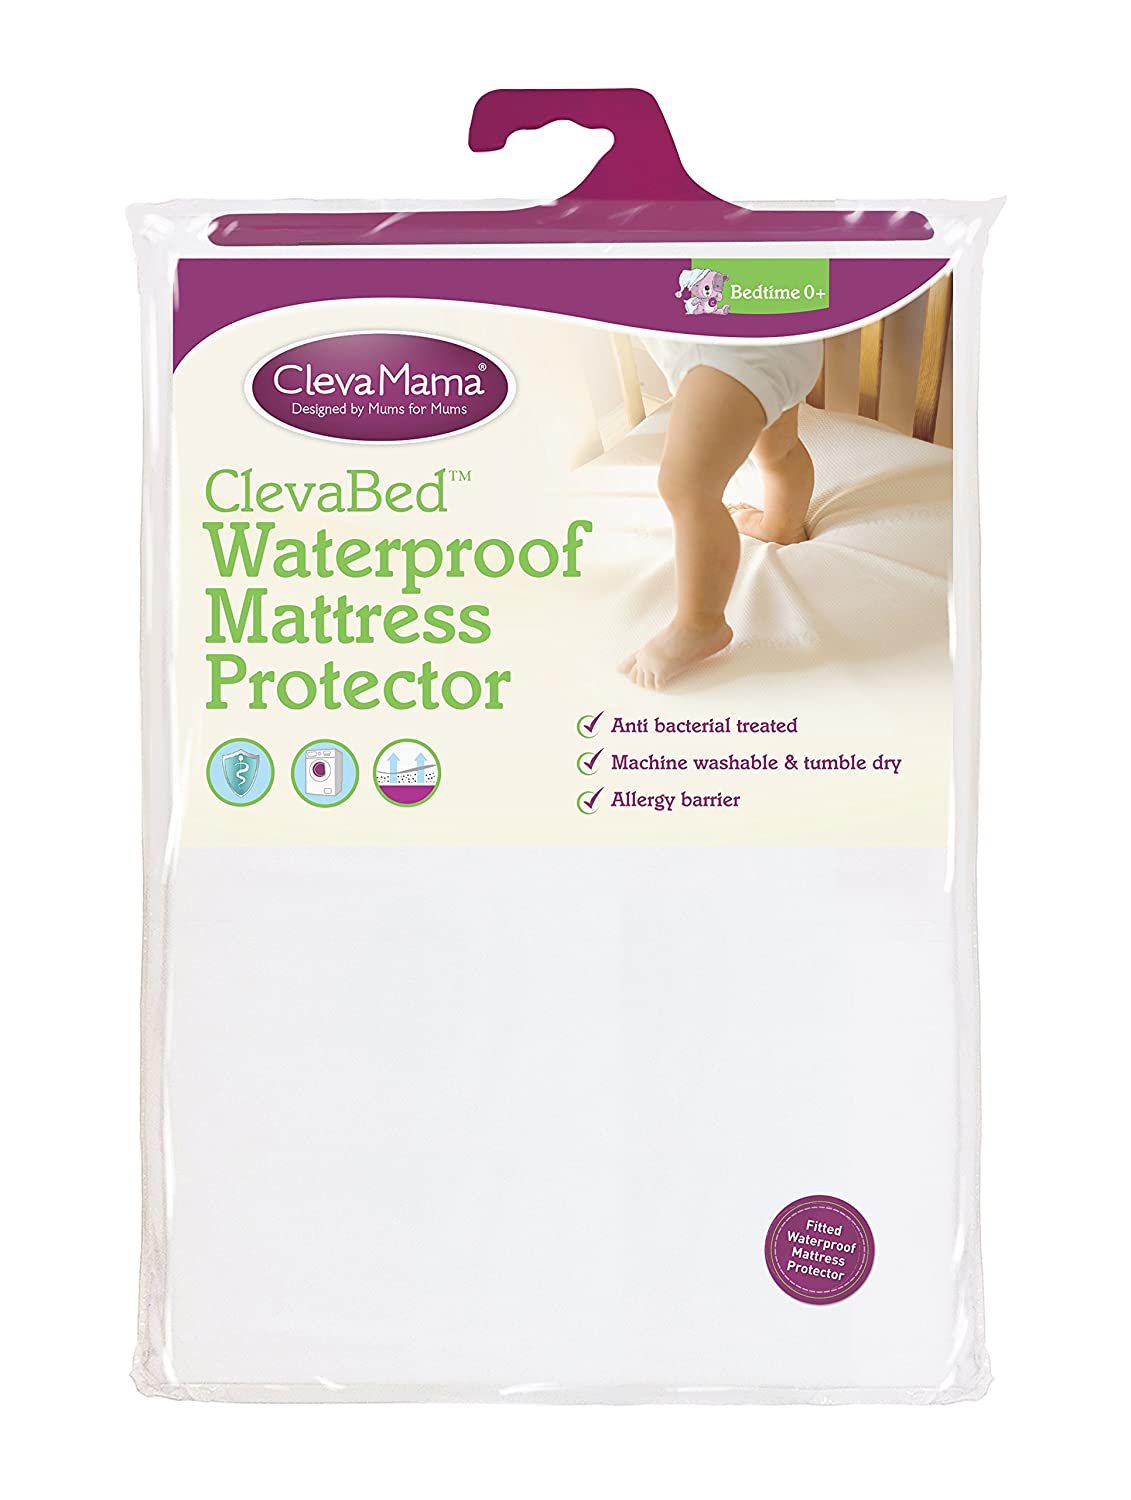 Clevamama Waterproof Mattress Protector Cot Bed (70x140 cm) - Fitted,  Brushed Cotton: Amazon.co.uk: Baby